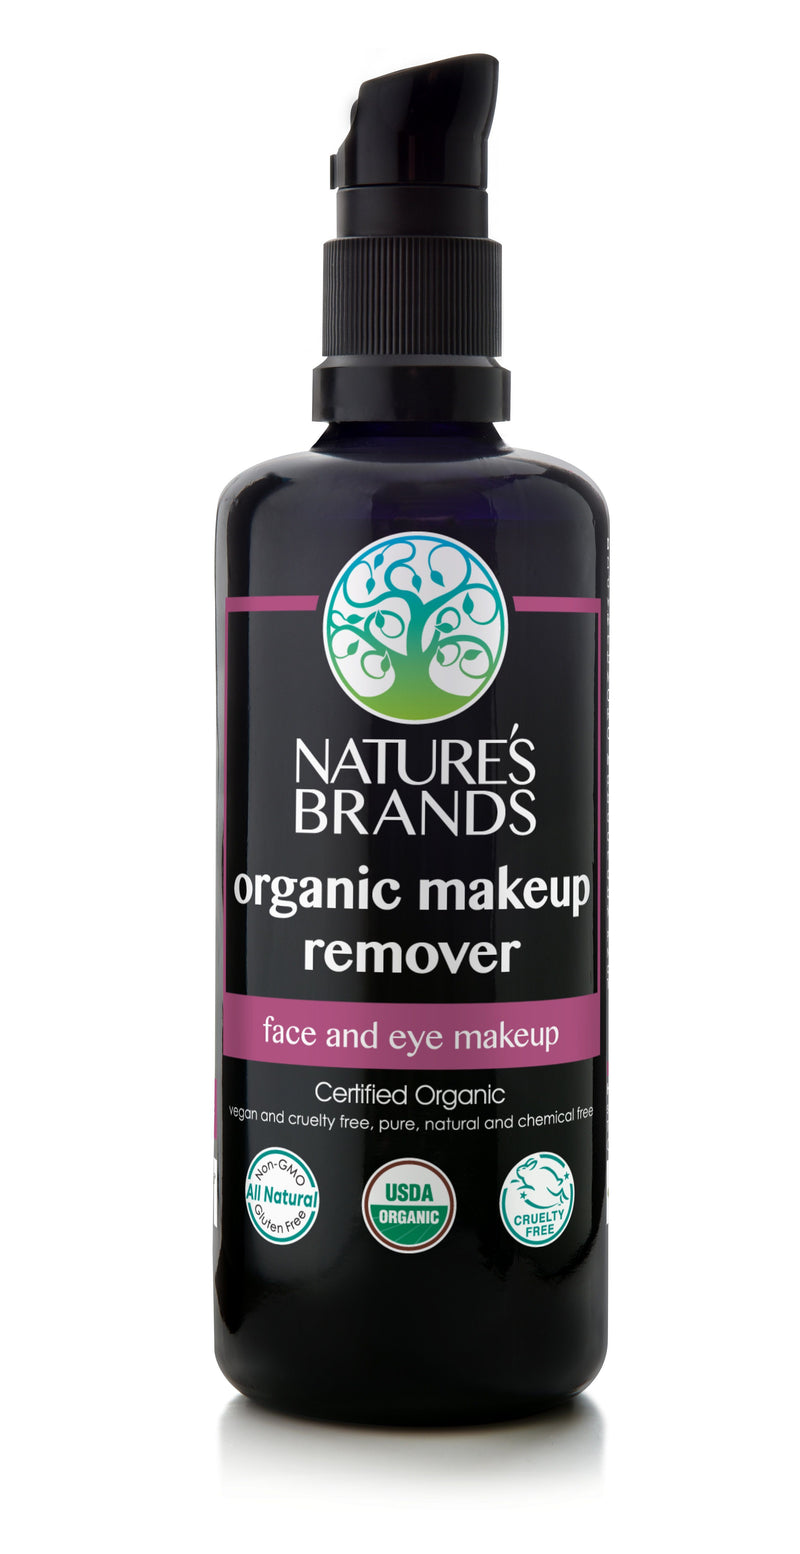 Herbal Choice Mari Organic Makeup Remover - Herbal Choice Mari Organic Makeup Remover - 3.4floz